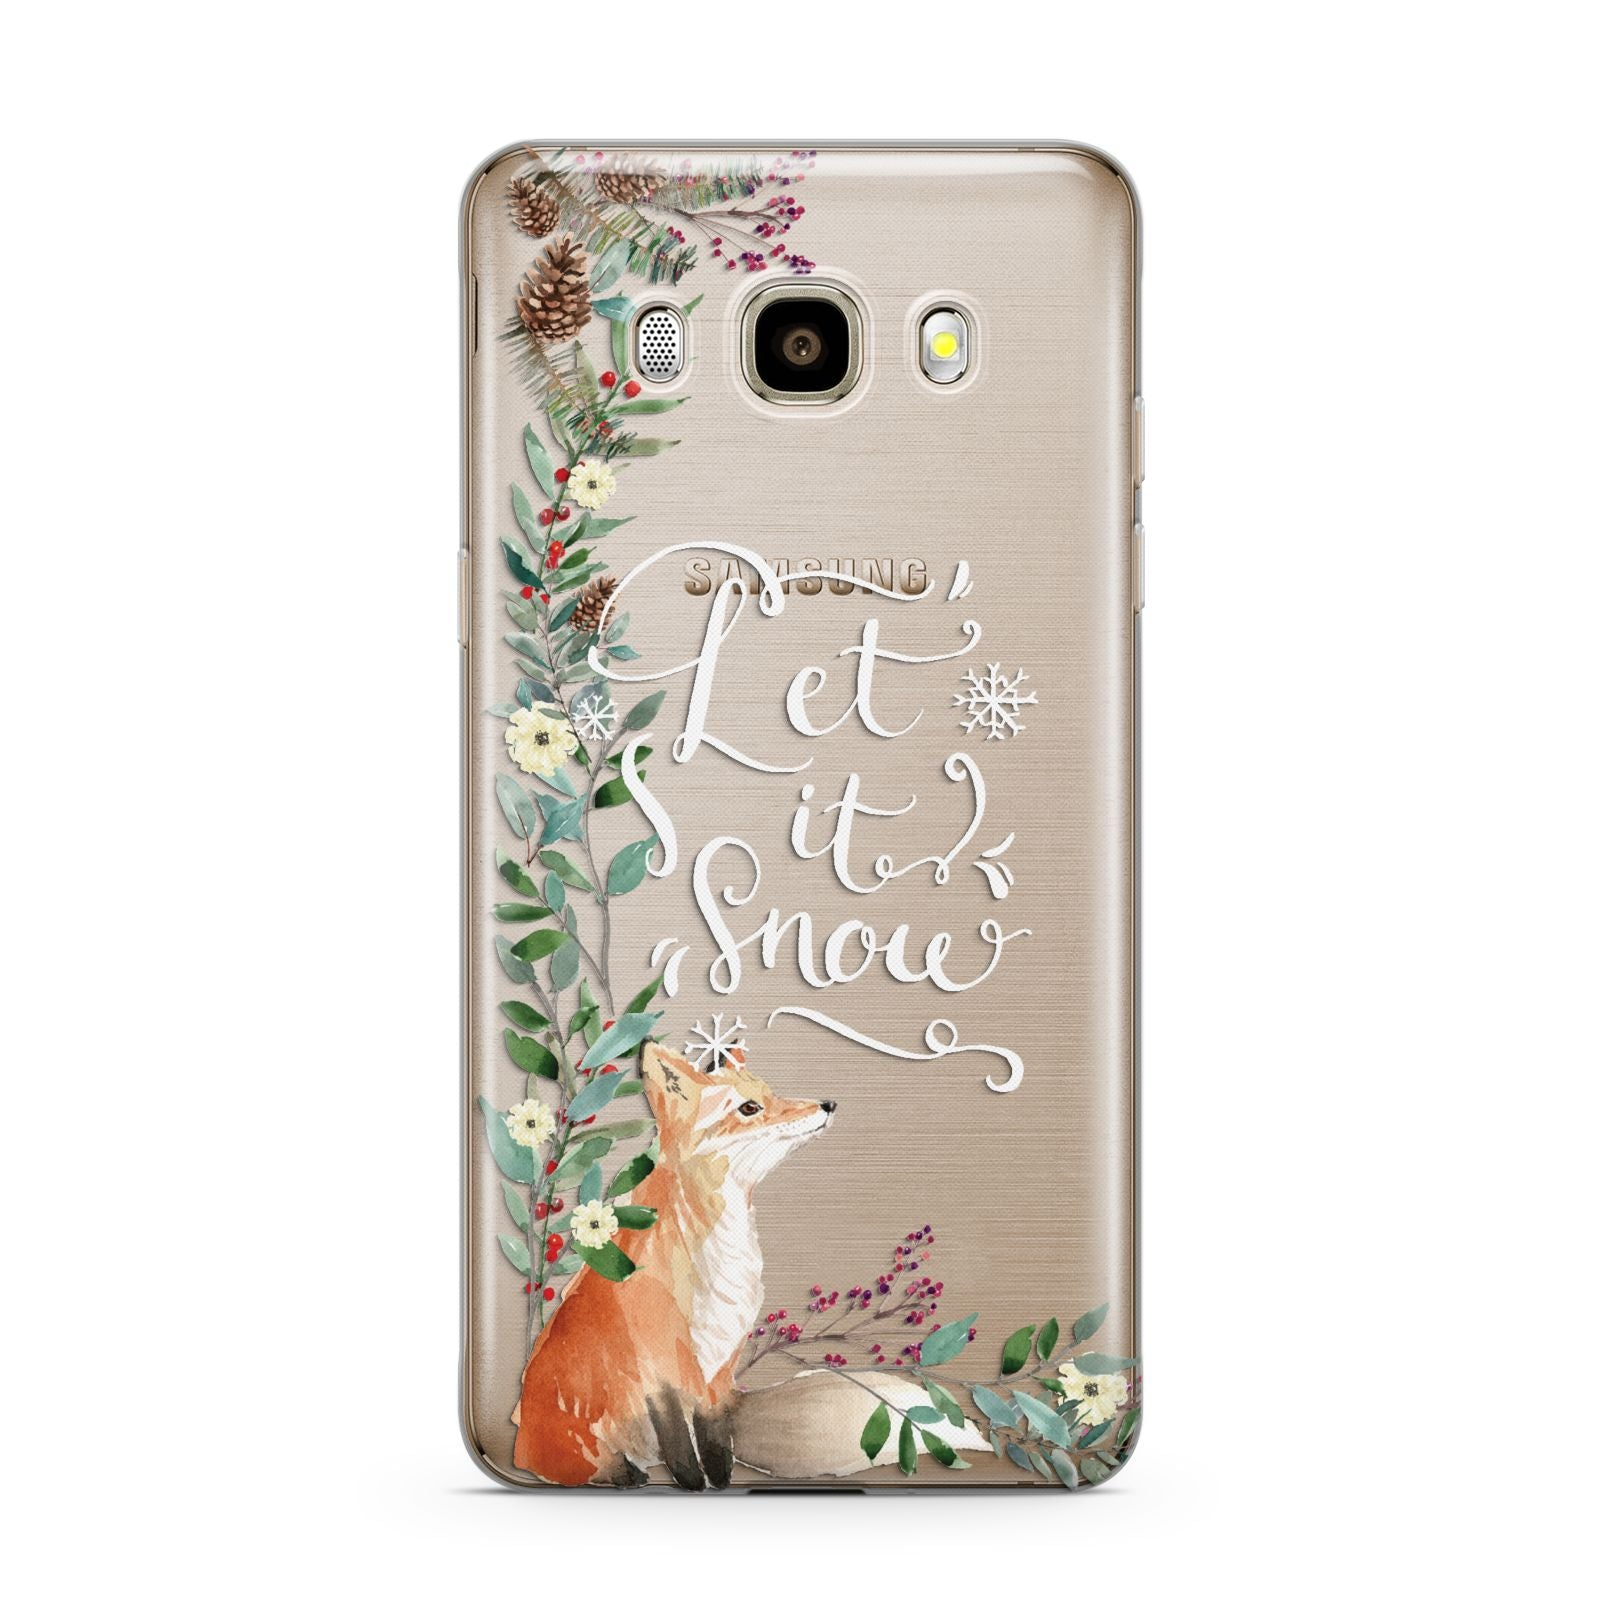 Let It Snow Christmas Samsung Galaxy J7 2016 Case on gold phone